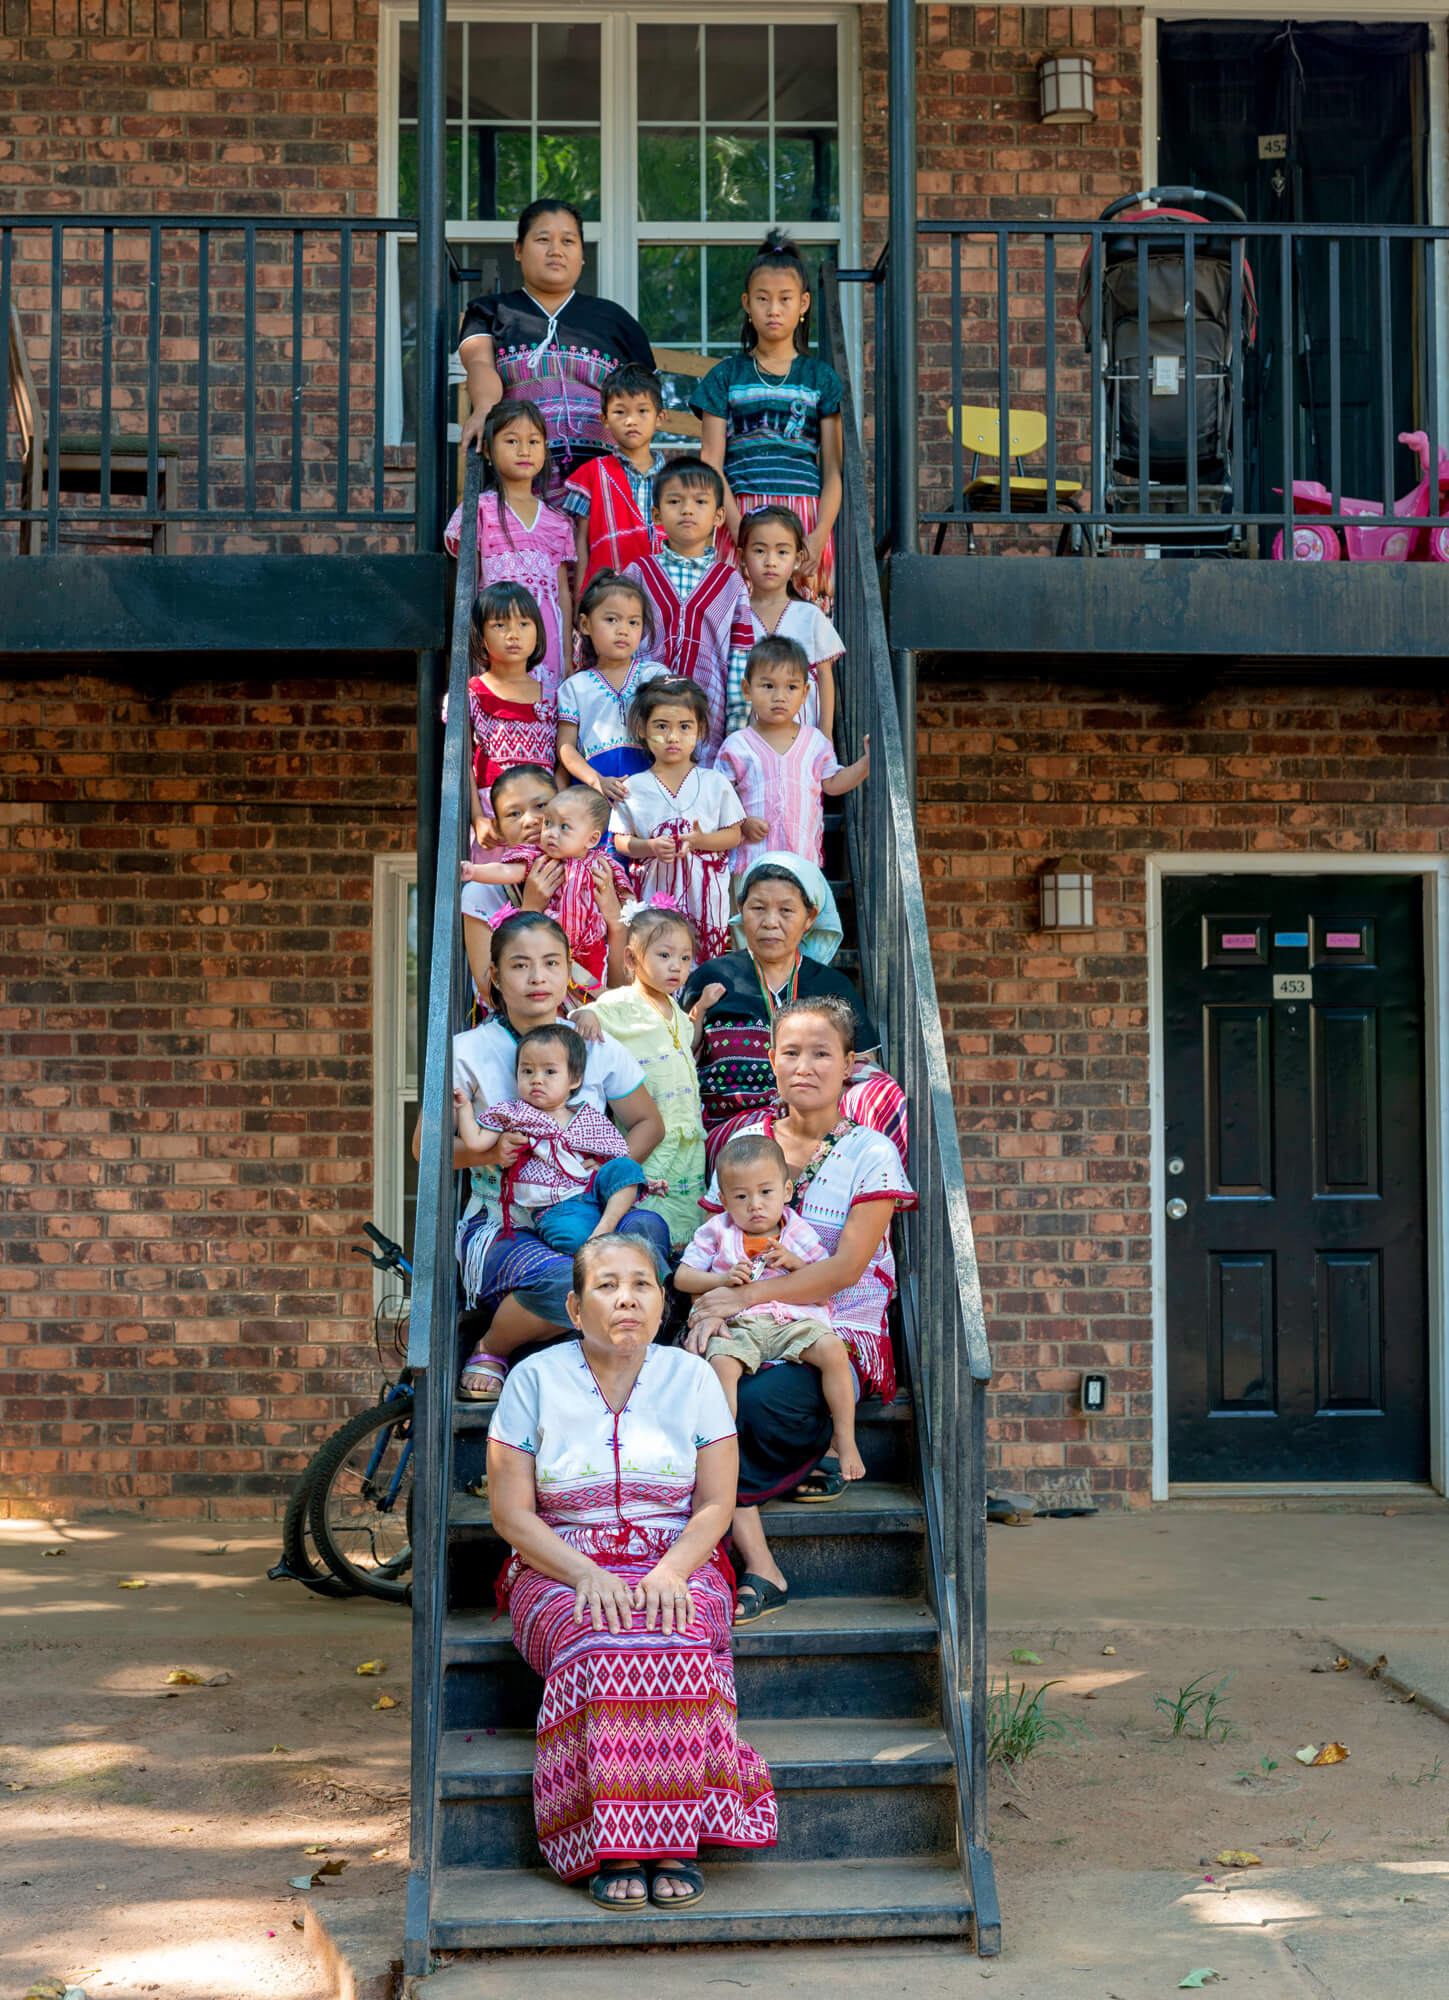 These four families — the Way Htoos, the Law Wahs, the April Paws, and the Mu Shis — are refugees who fled violence from their homes in Burma. They now live in Clarkston.